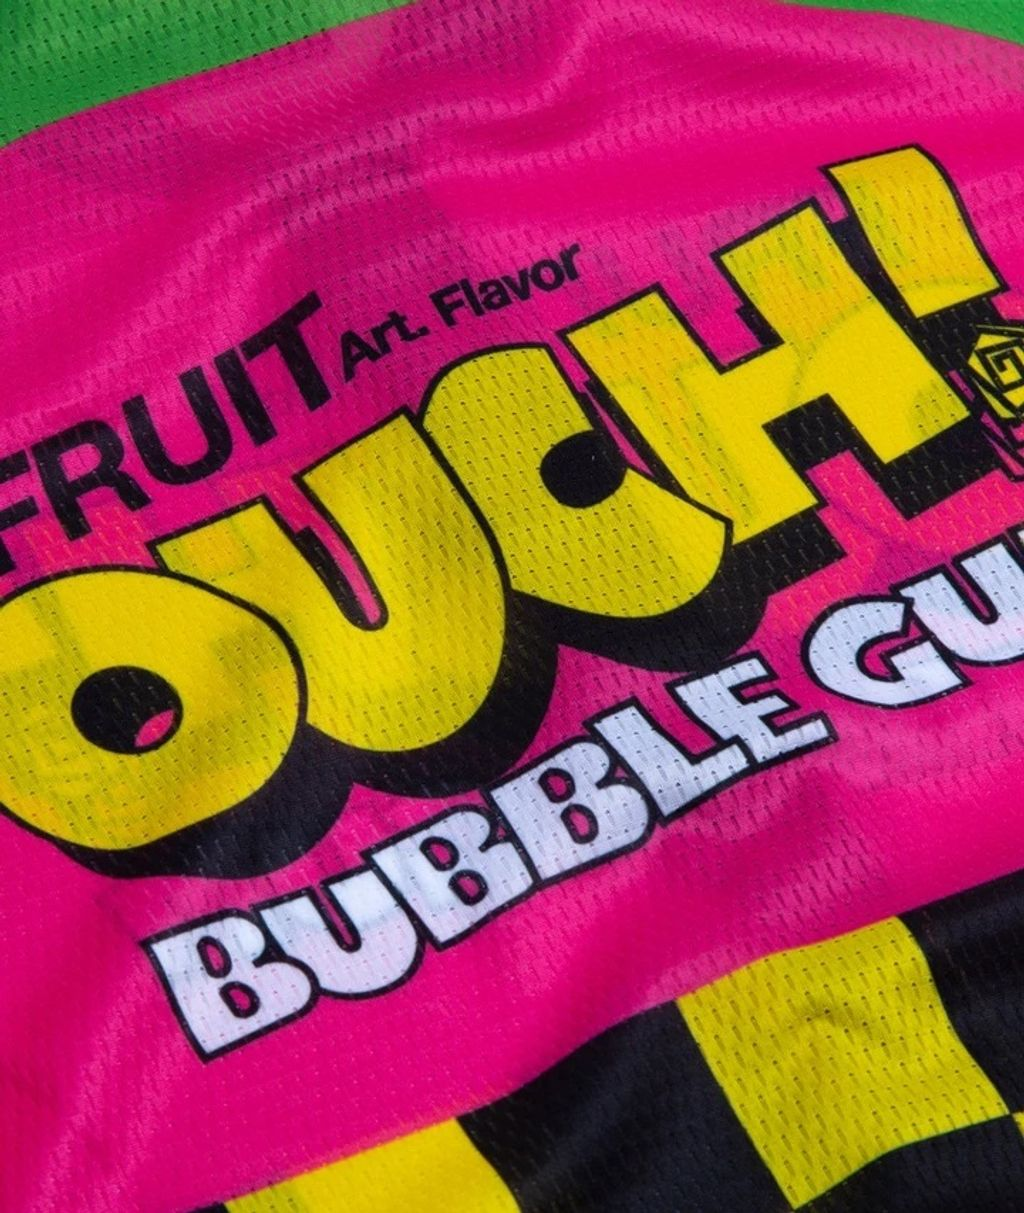 godandfamous_ouch_jersey_7_720x.jpg